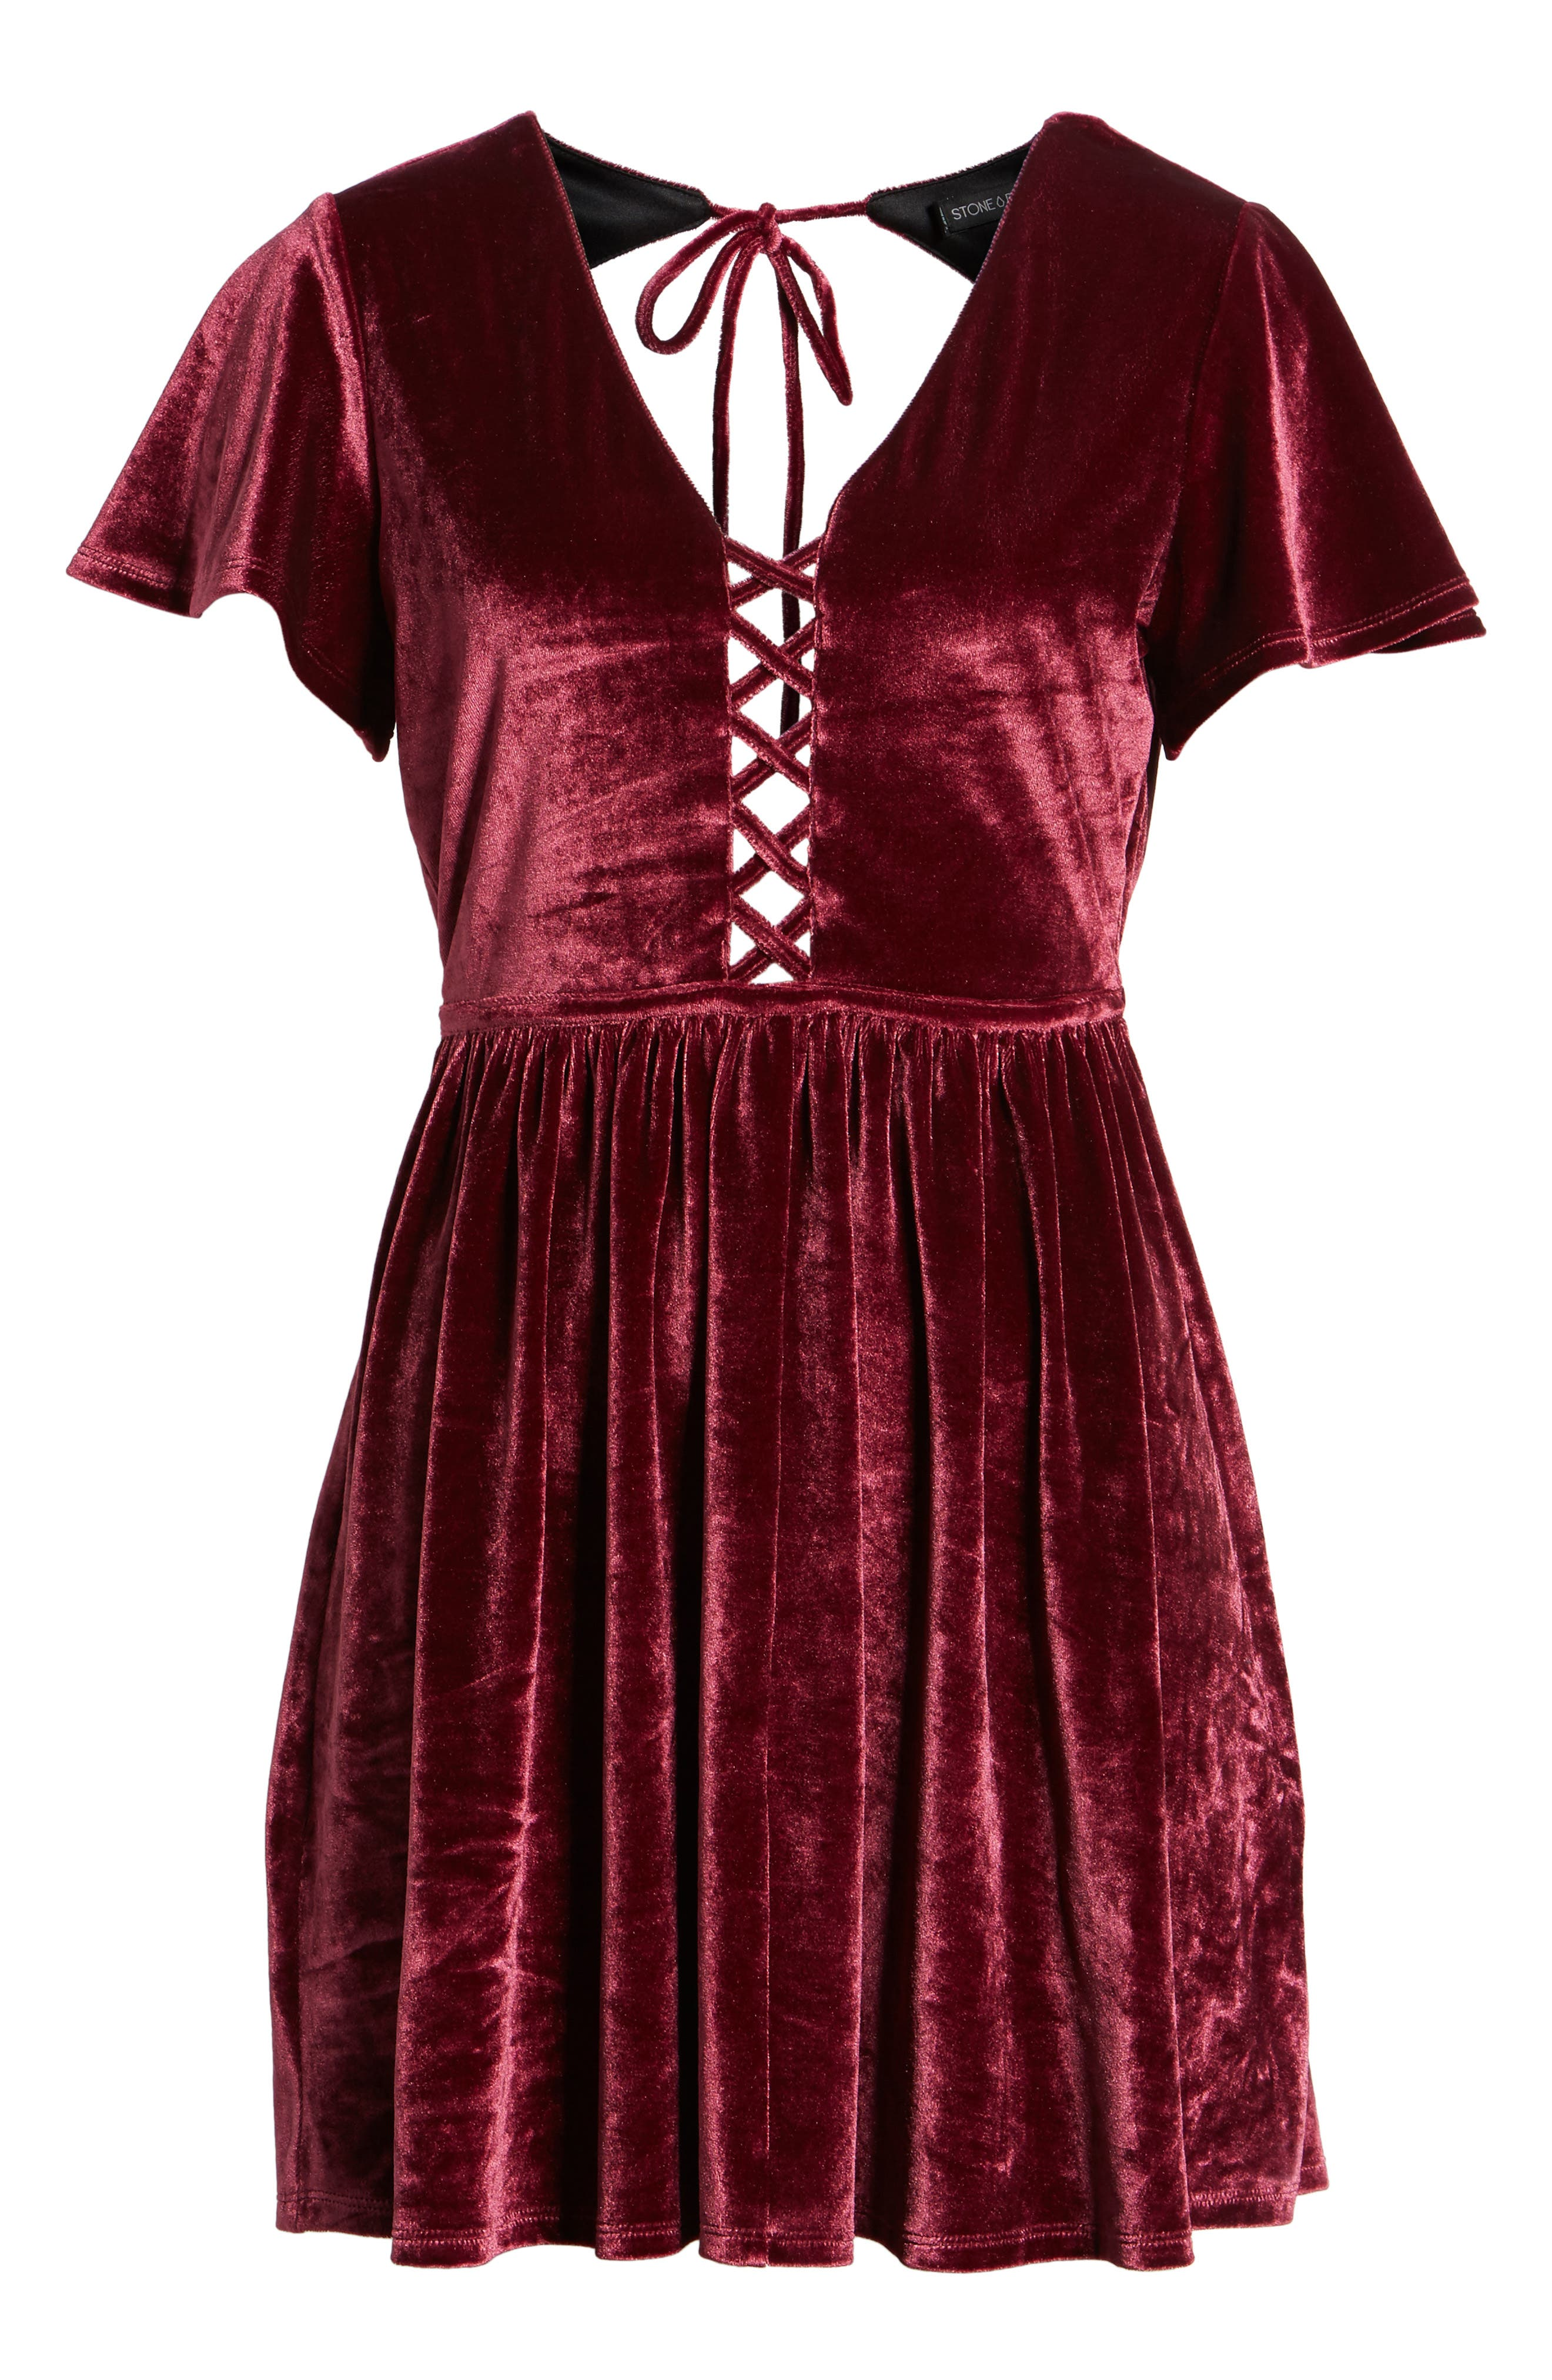 Velvacious Dress,                             Alternate thumbnail 7, color,                             Burgundy